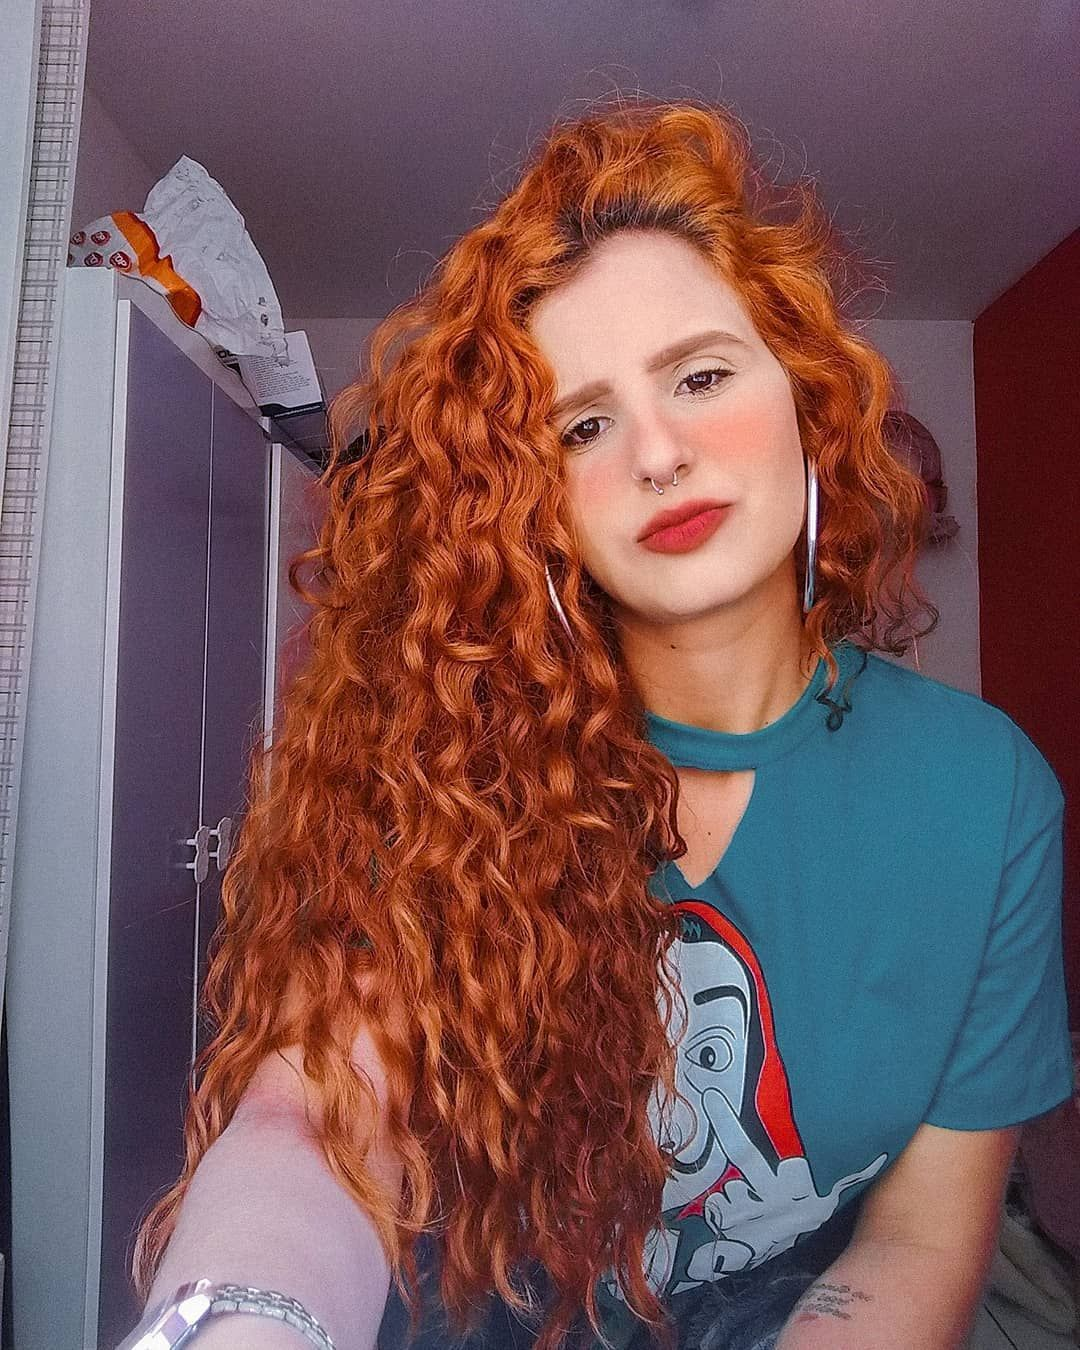 Curly Hairstyles For 3c Hair Hairstyles Boy S With Curly Hair Curly Hairstyles For 30 Year Old Em 2020 Cor De Cabelo Ruivo Cabelo Ruivo Cabelos Ruivos Encaracolados